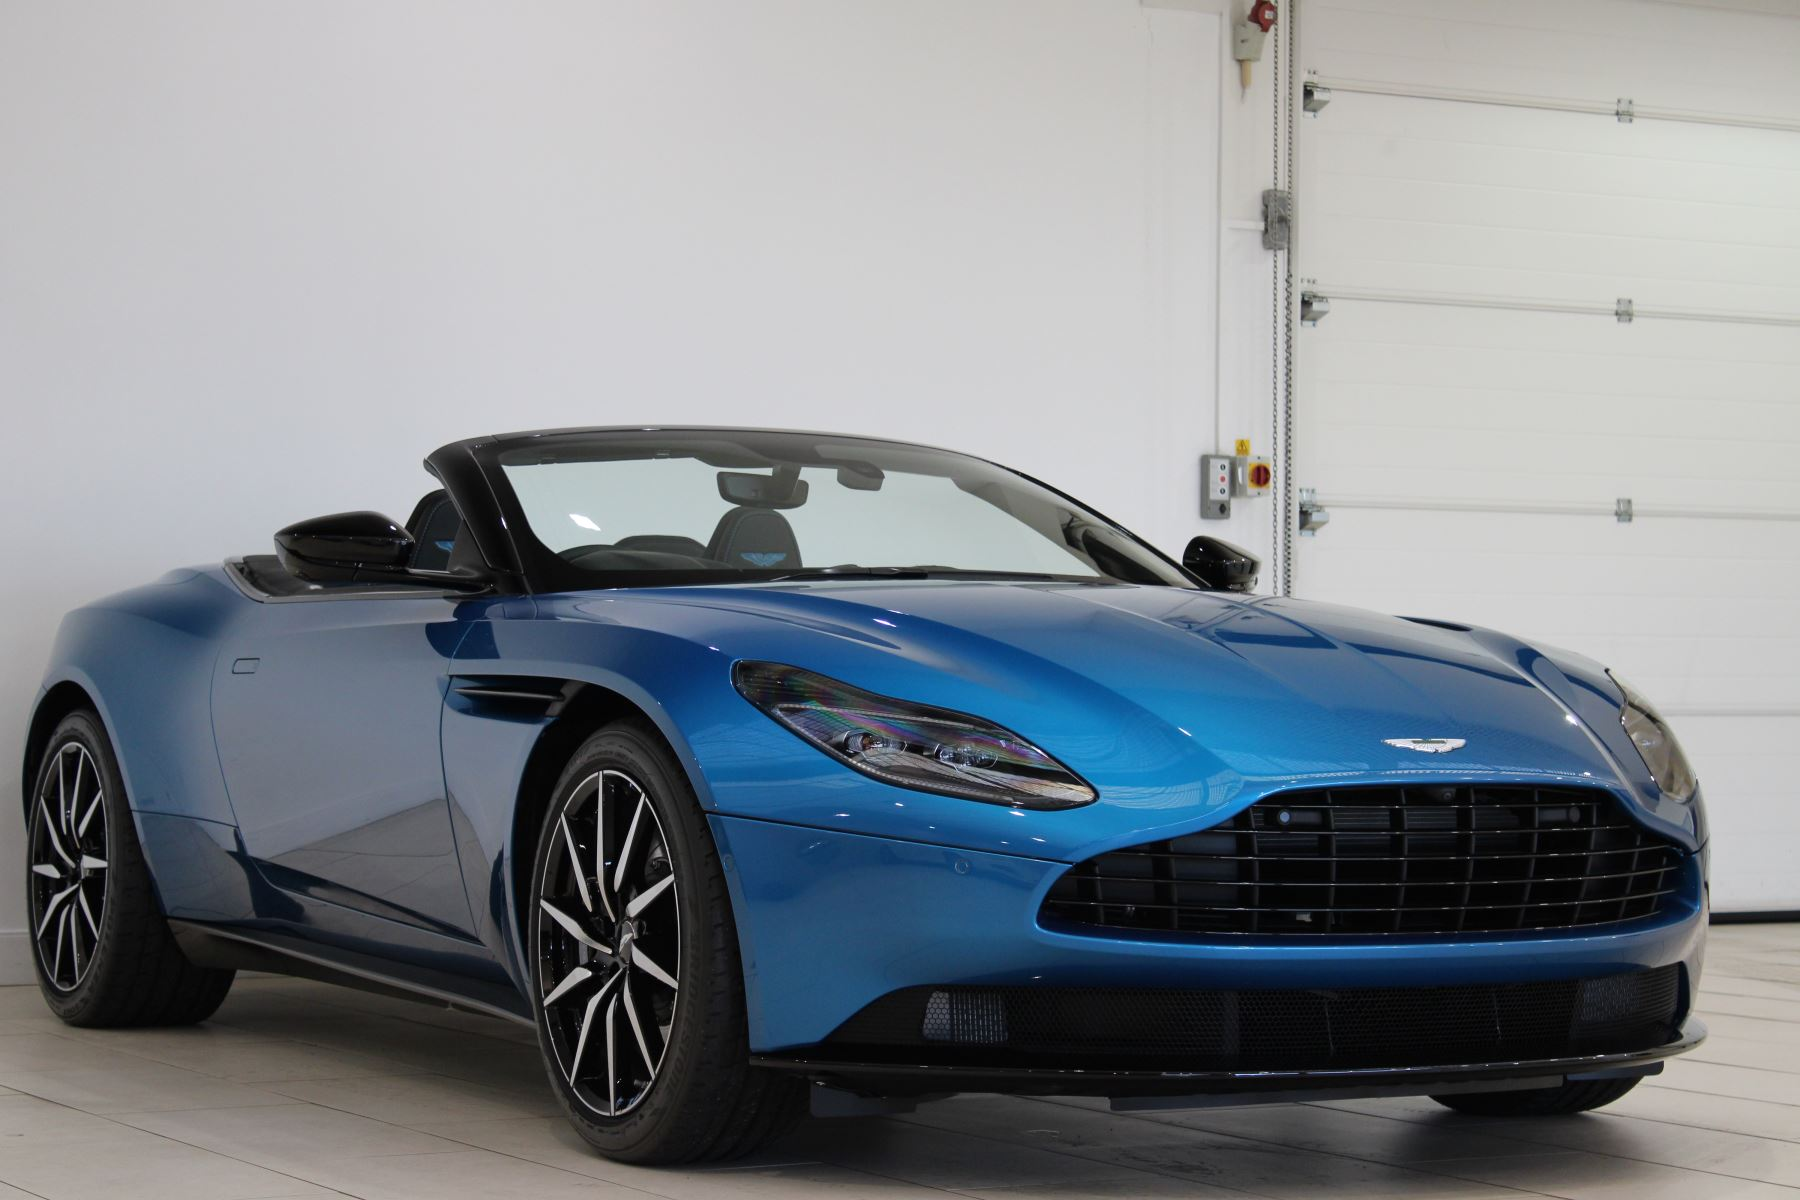 Aston Martin DB11 V8 Volante Touchtronic 4.0 Automatic 2 door Convertible (2020) image